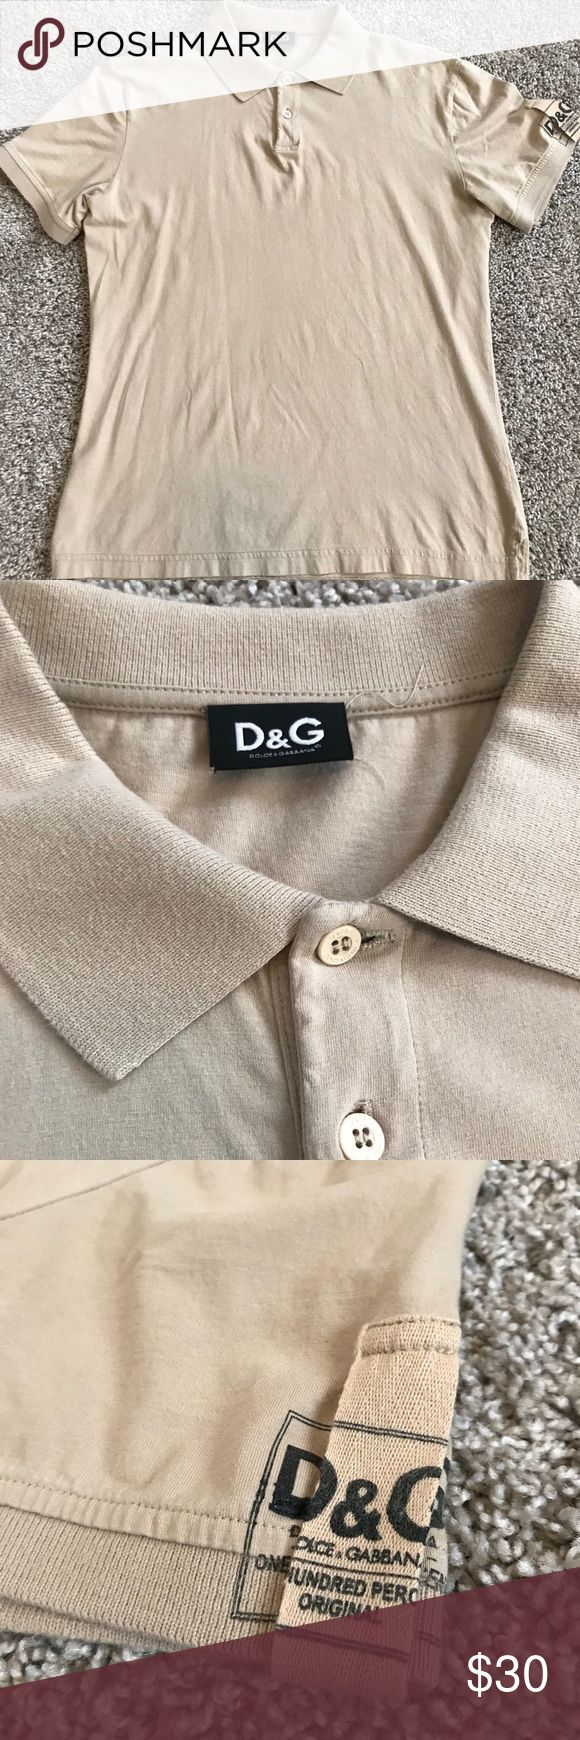 Dolce and Gabbana dress casual polo shirt Polo is just too small for me. Has 2 tiny holes under the buttons from a tag I believe - as shown in pic.  Selling a big discount due to minor imperfections.   If you like: Gucci, polo, Ralph Lauren, RRL, Louis Vuitton, Prada, d&g Dolce & Gabbana Shirts Polos